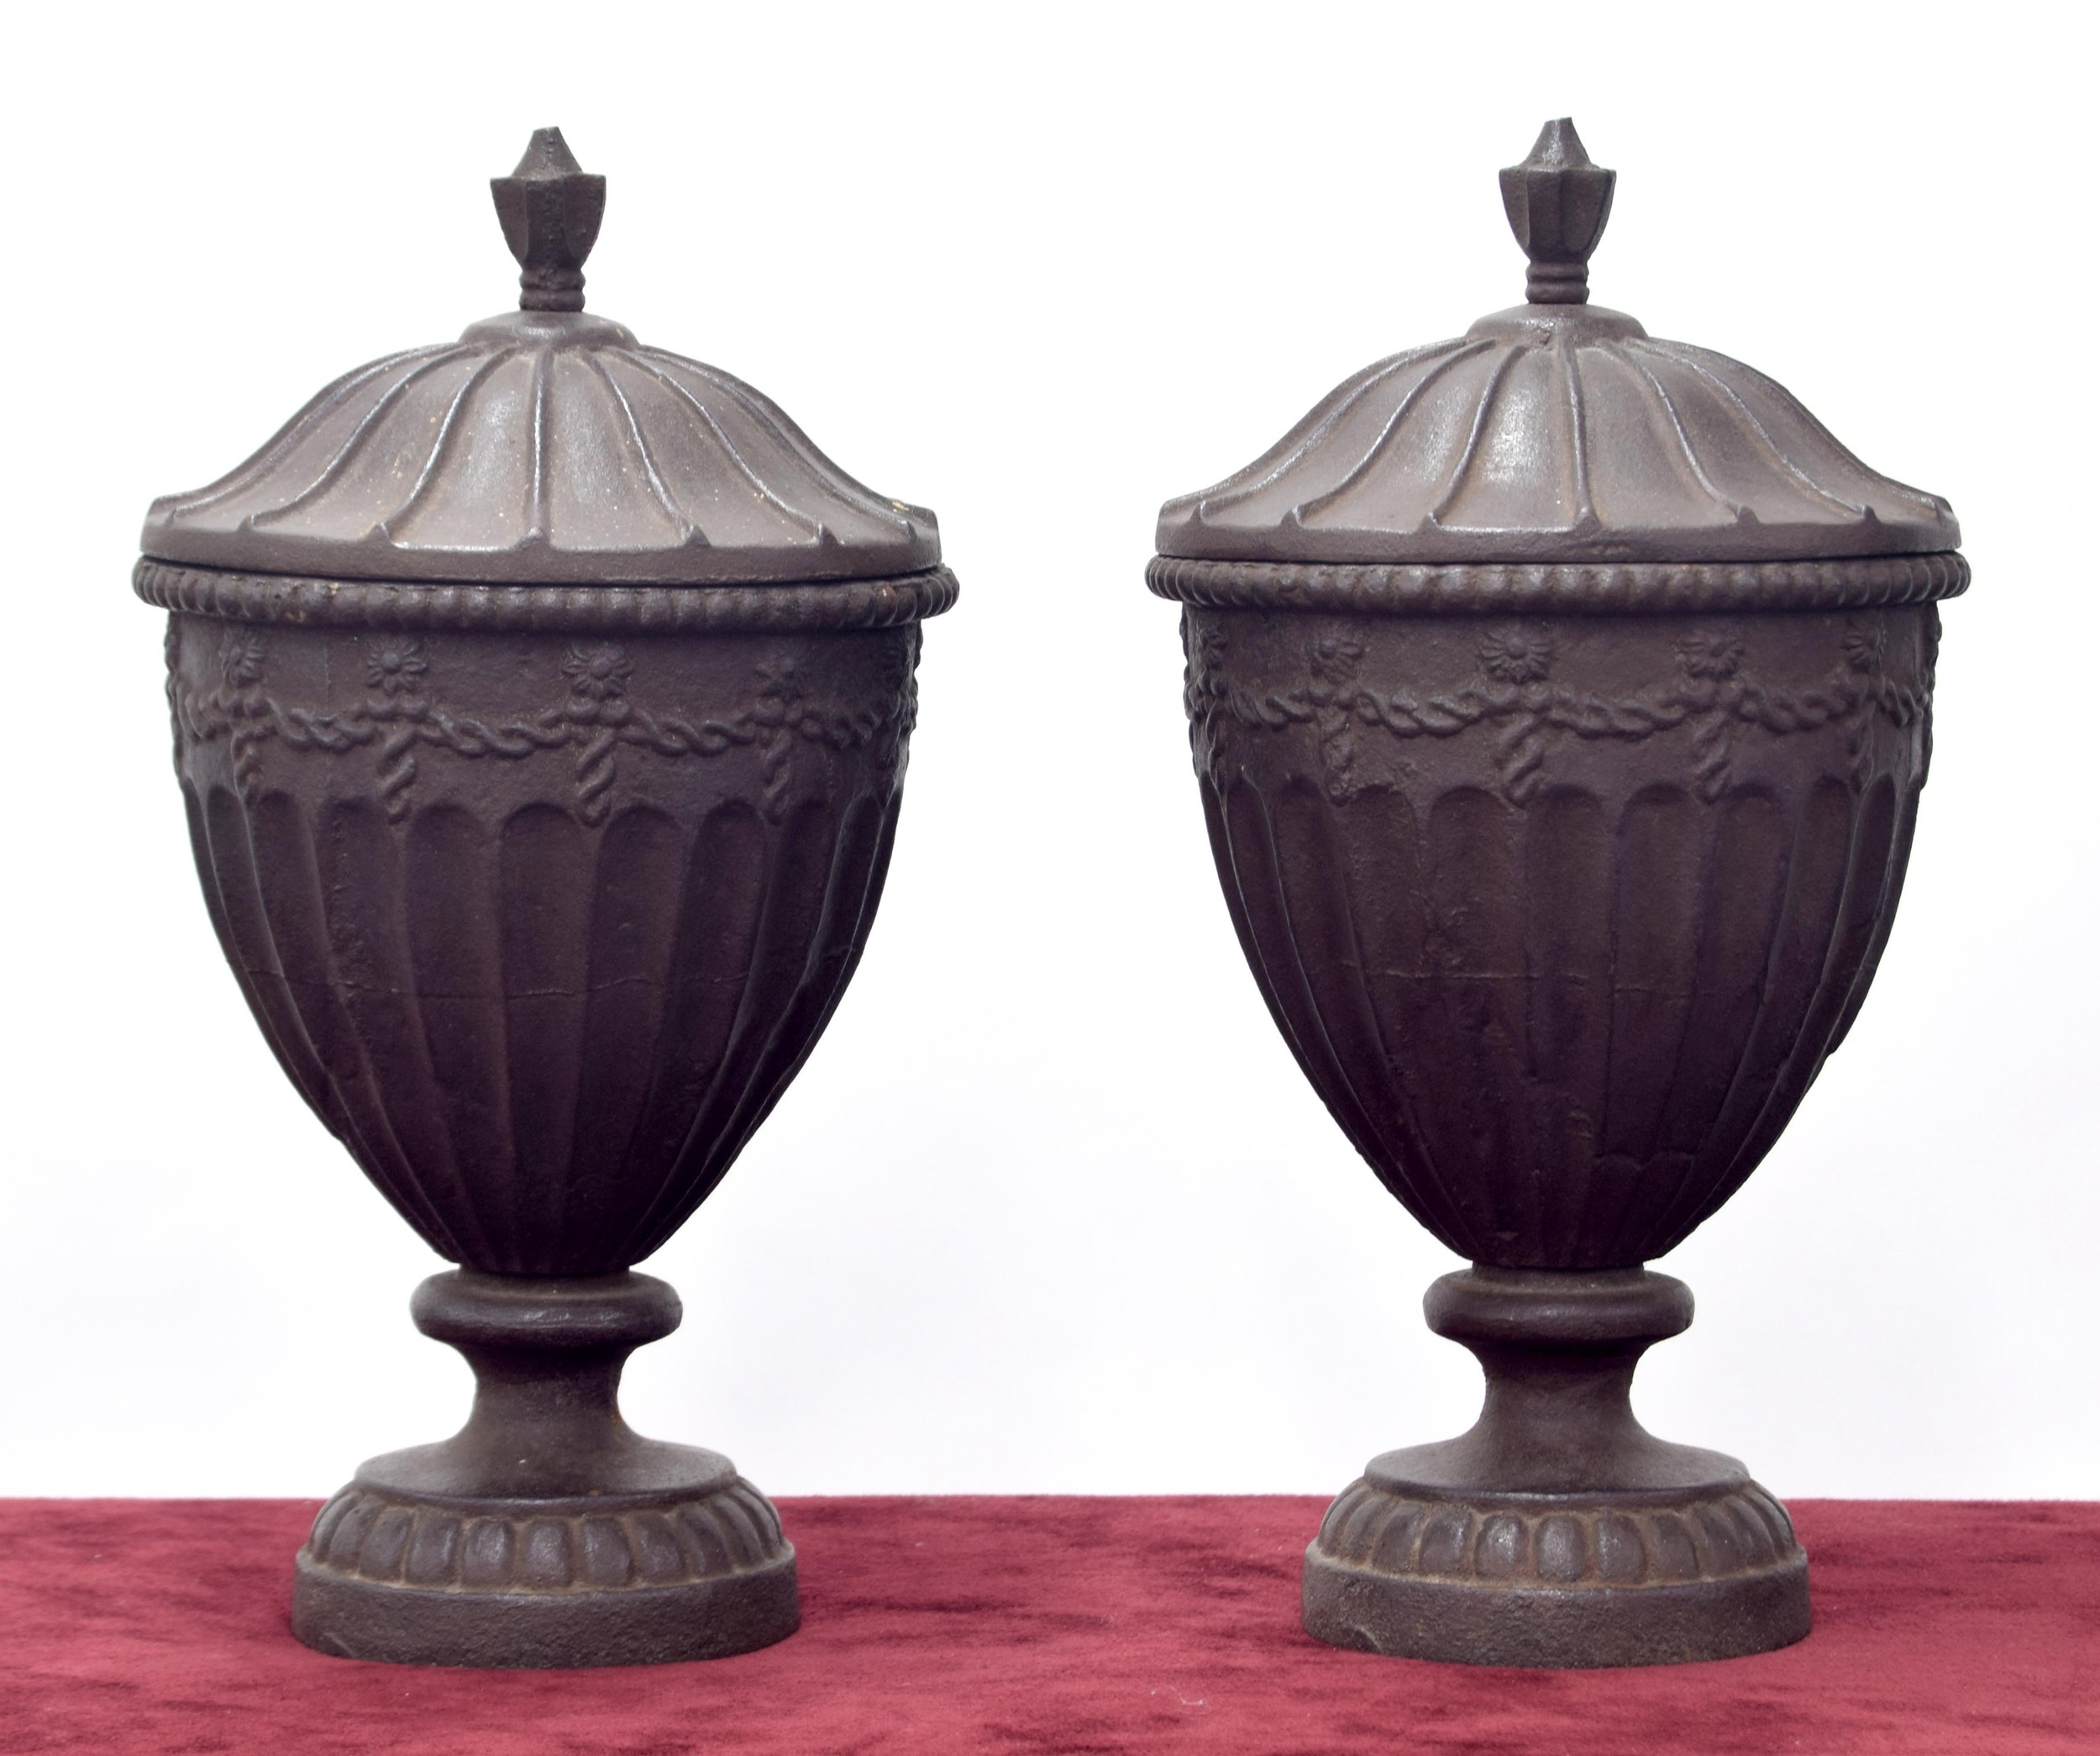 Pair of heavy cast metal urns and covers int he Georgian manner,each with fluted bodies upon